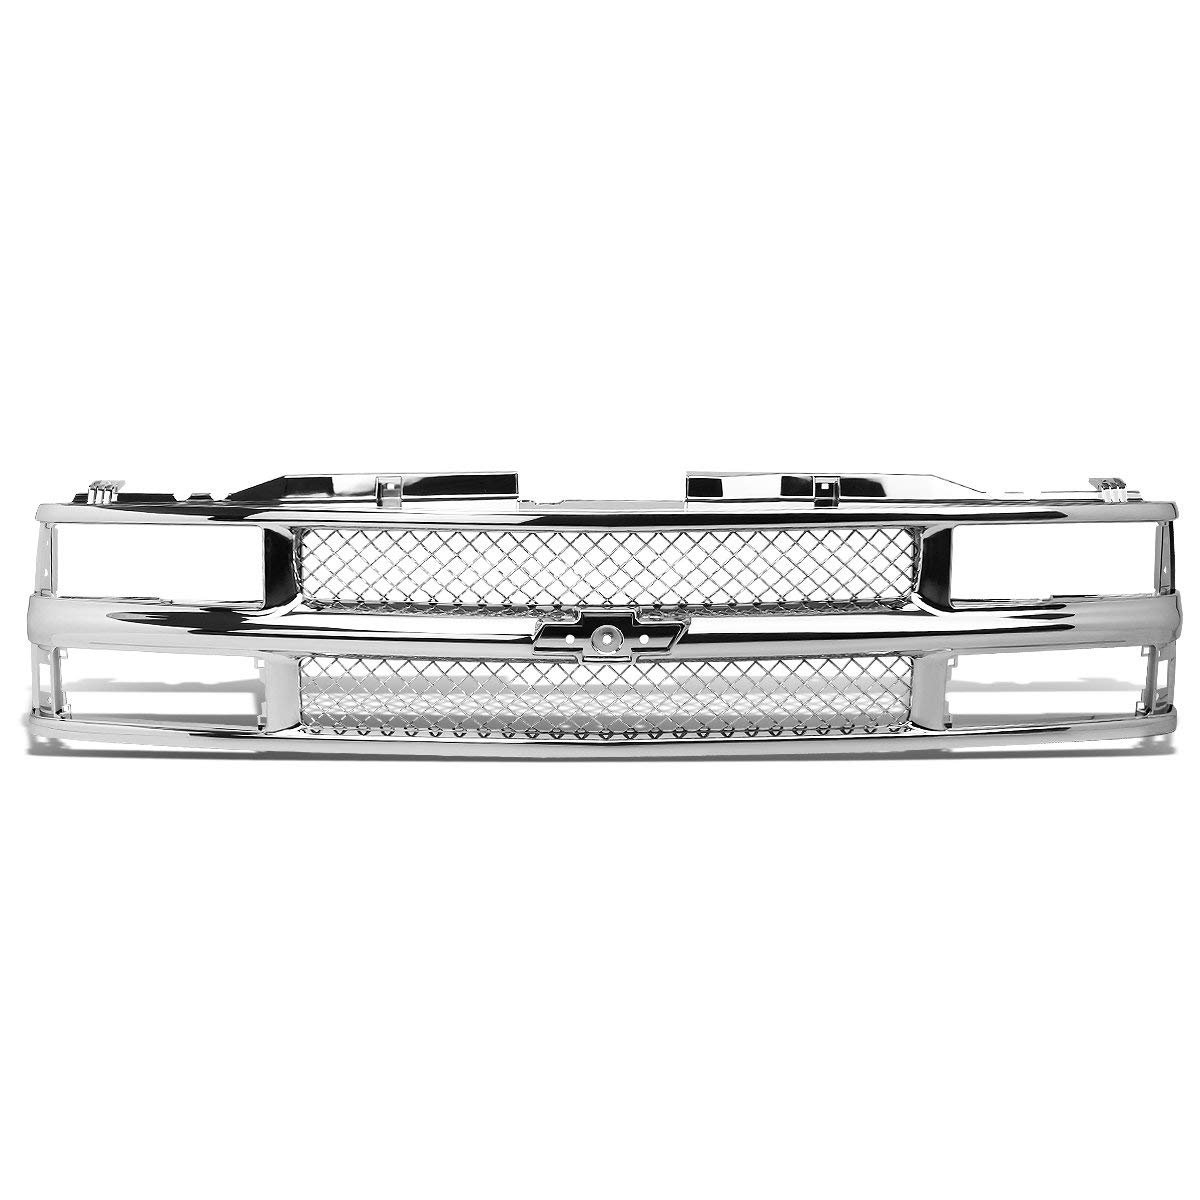 USAuto Front Bumper Chrome ABS Glossy Frame+Honeycomb Meshed Grille Guard for 94-00 CHEVY C10 C//K//TAHOE//BLAZER